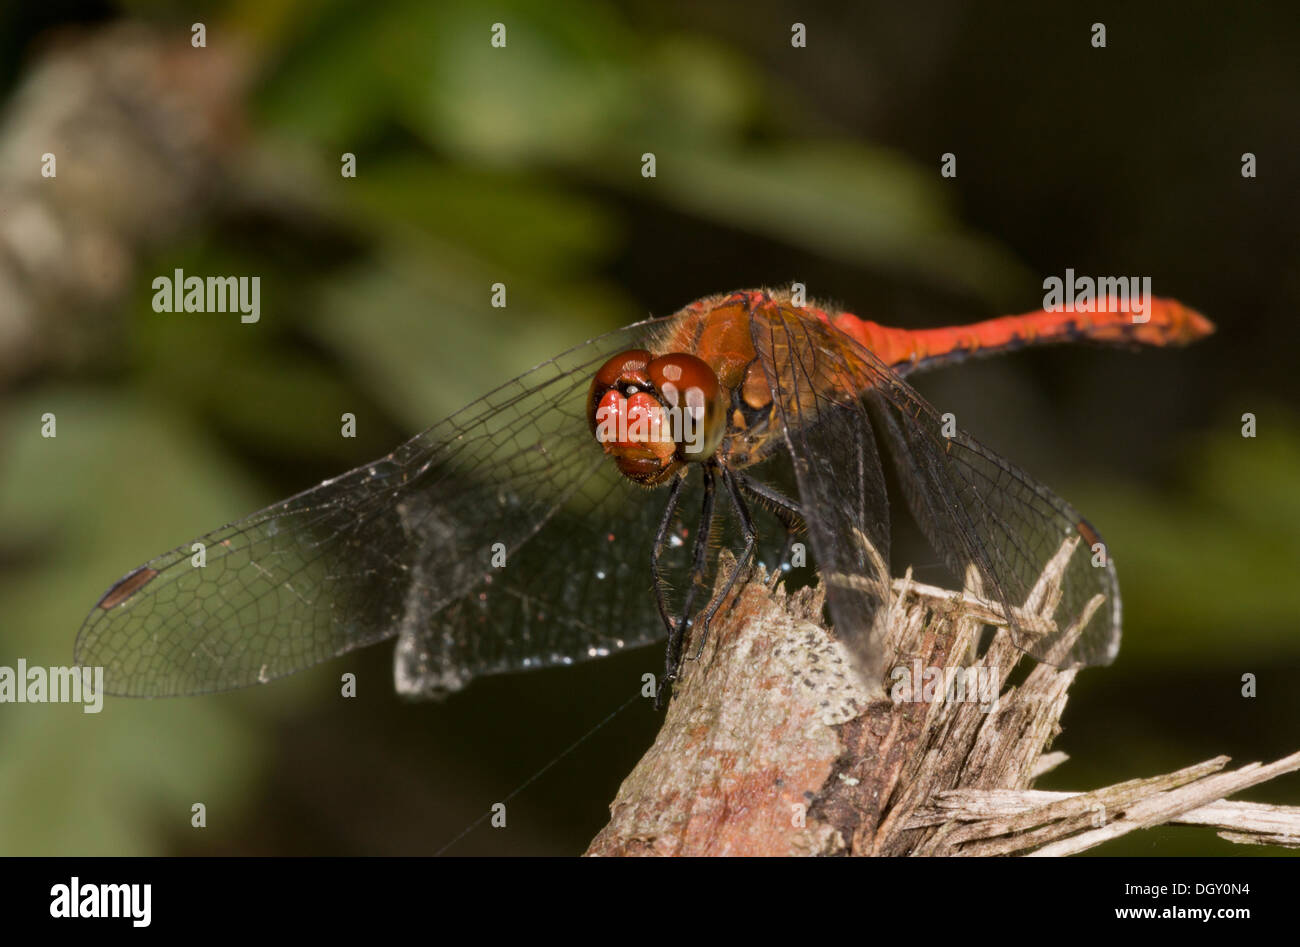 Ruddy darter dragonflies, Sympetrum sanguineum - perched male. - Stock Image